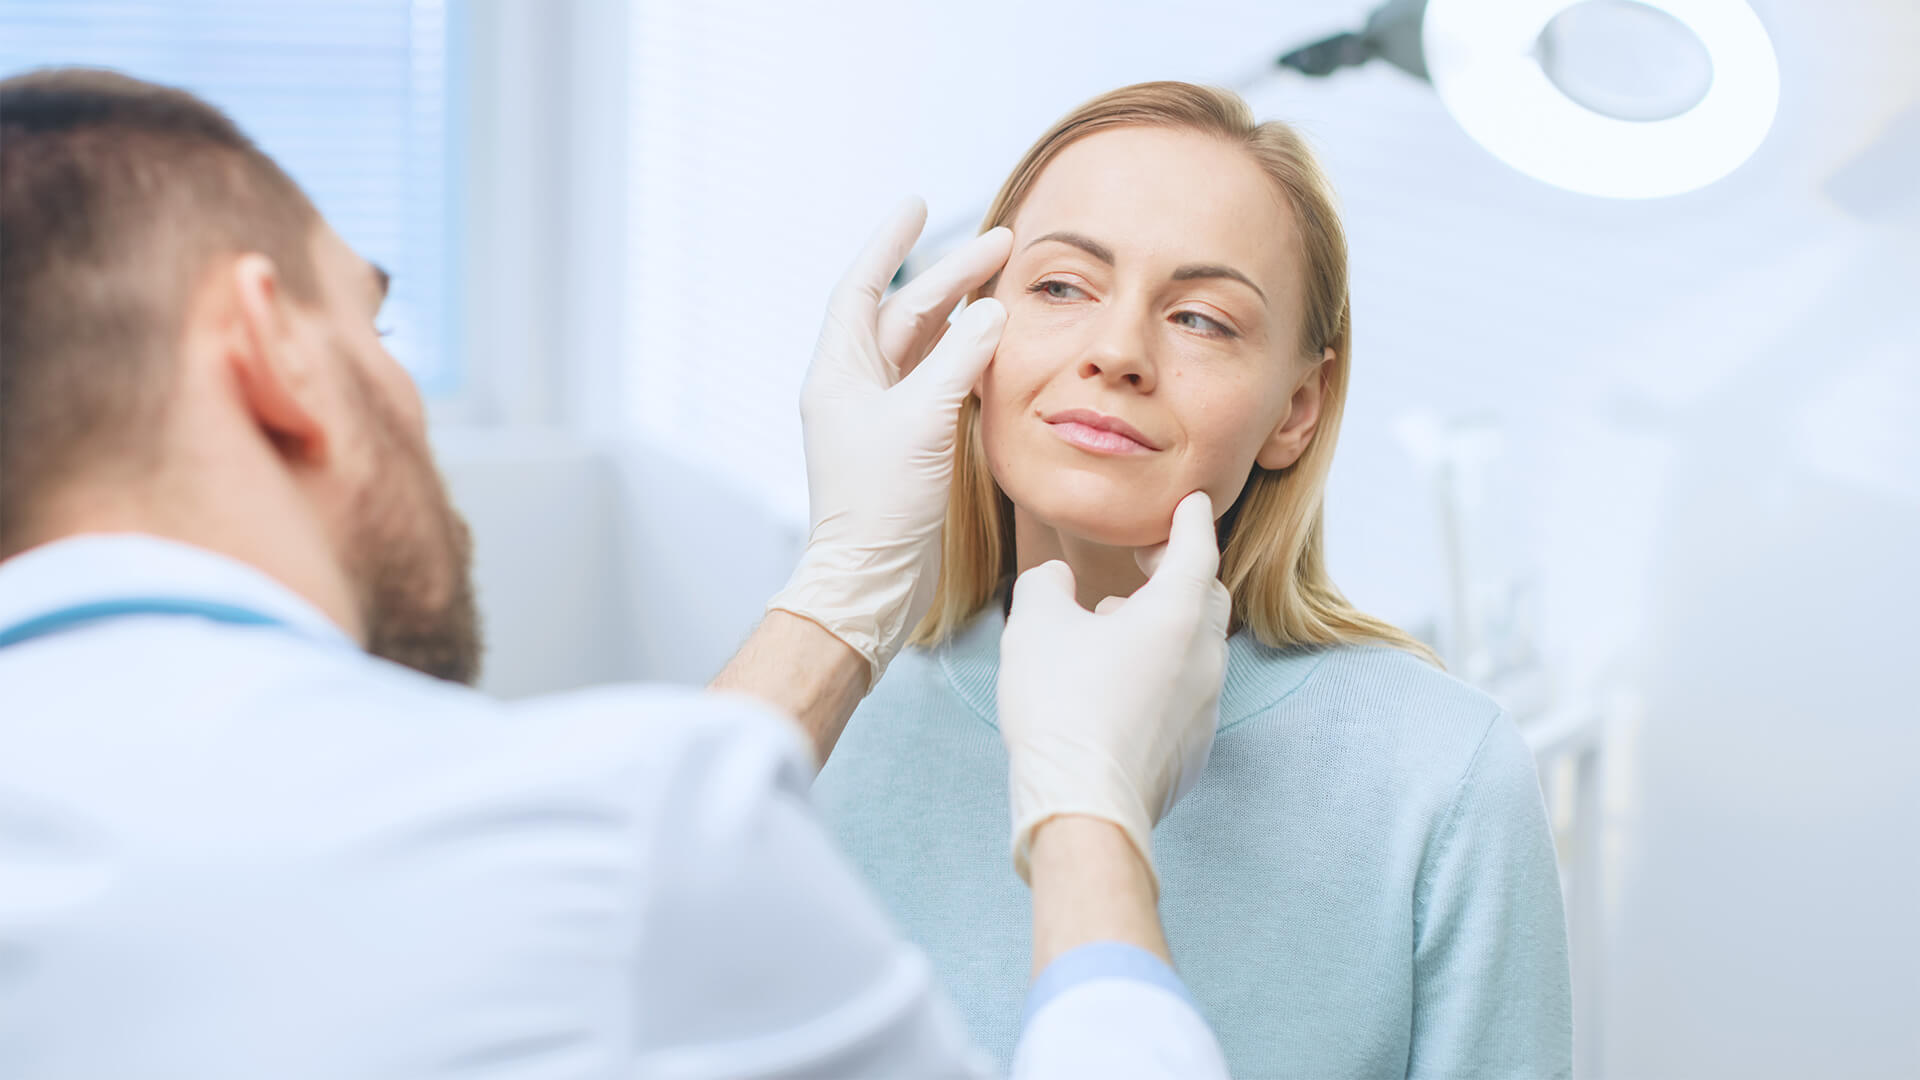 How Advances in Technology Have Improved the Cosmetic and Plastic Surgery Industry